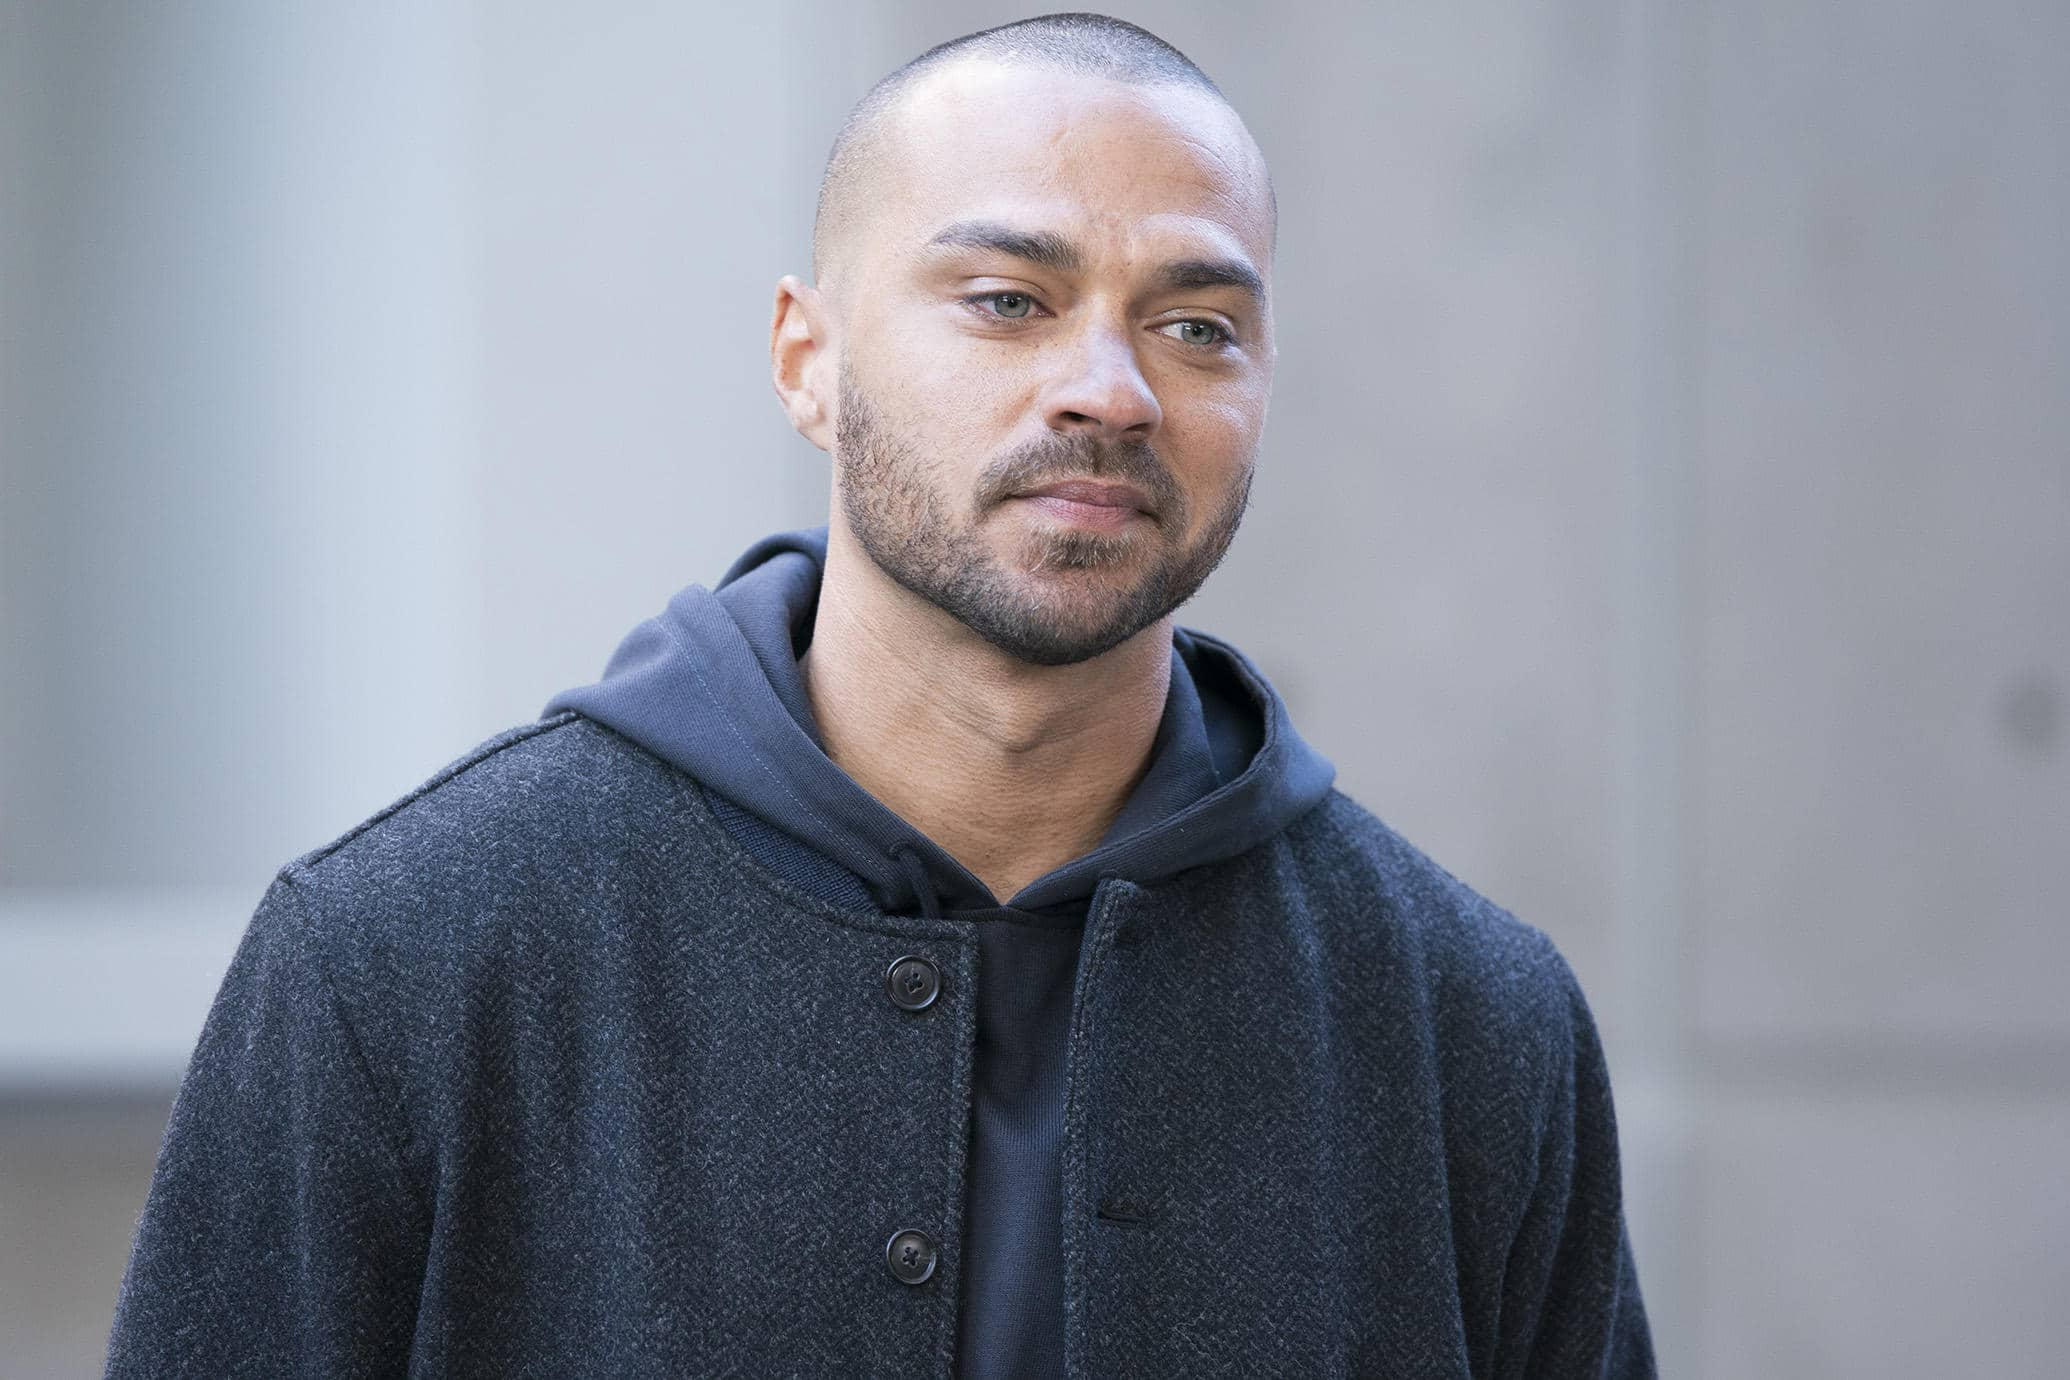 Jesse Williams American Actor, Director, Producer and Activist